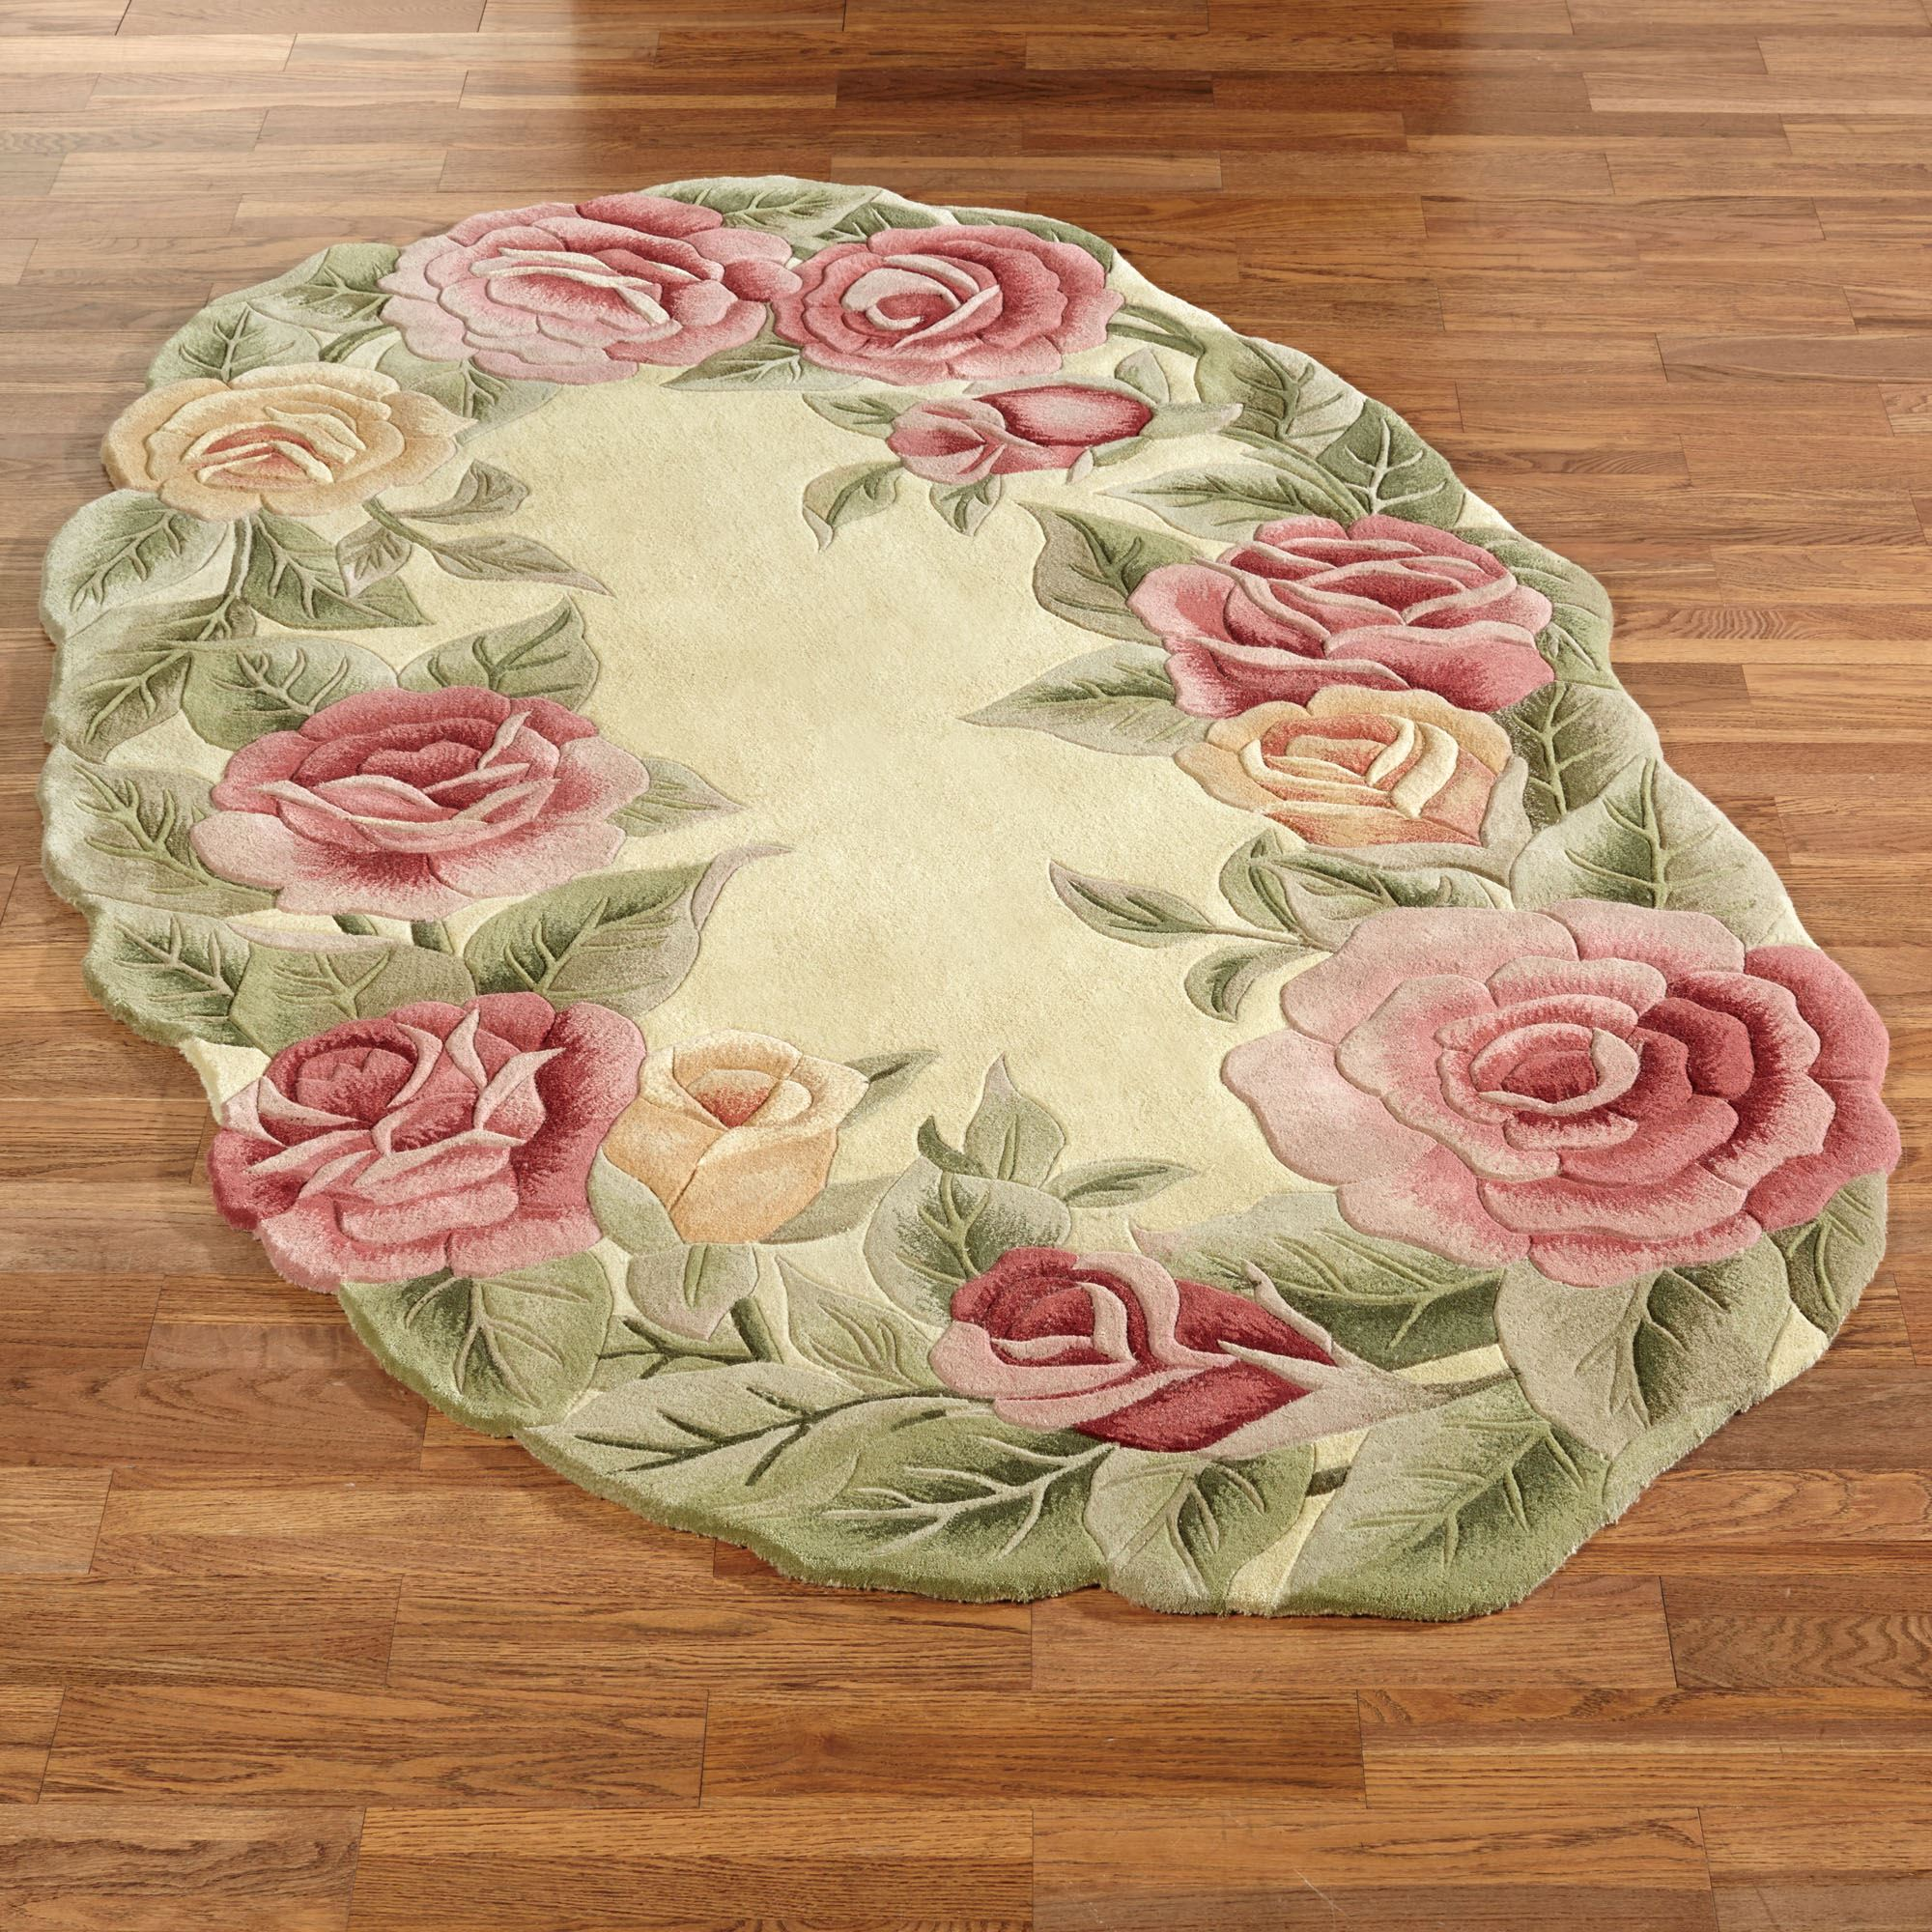 Image of: Roses Oval Rug